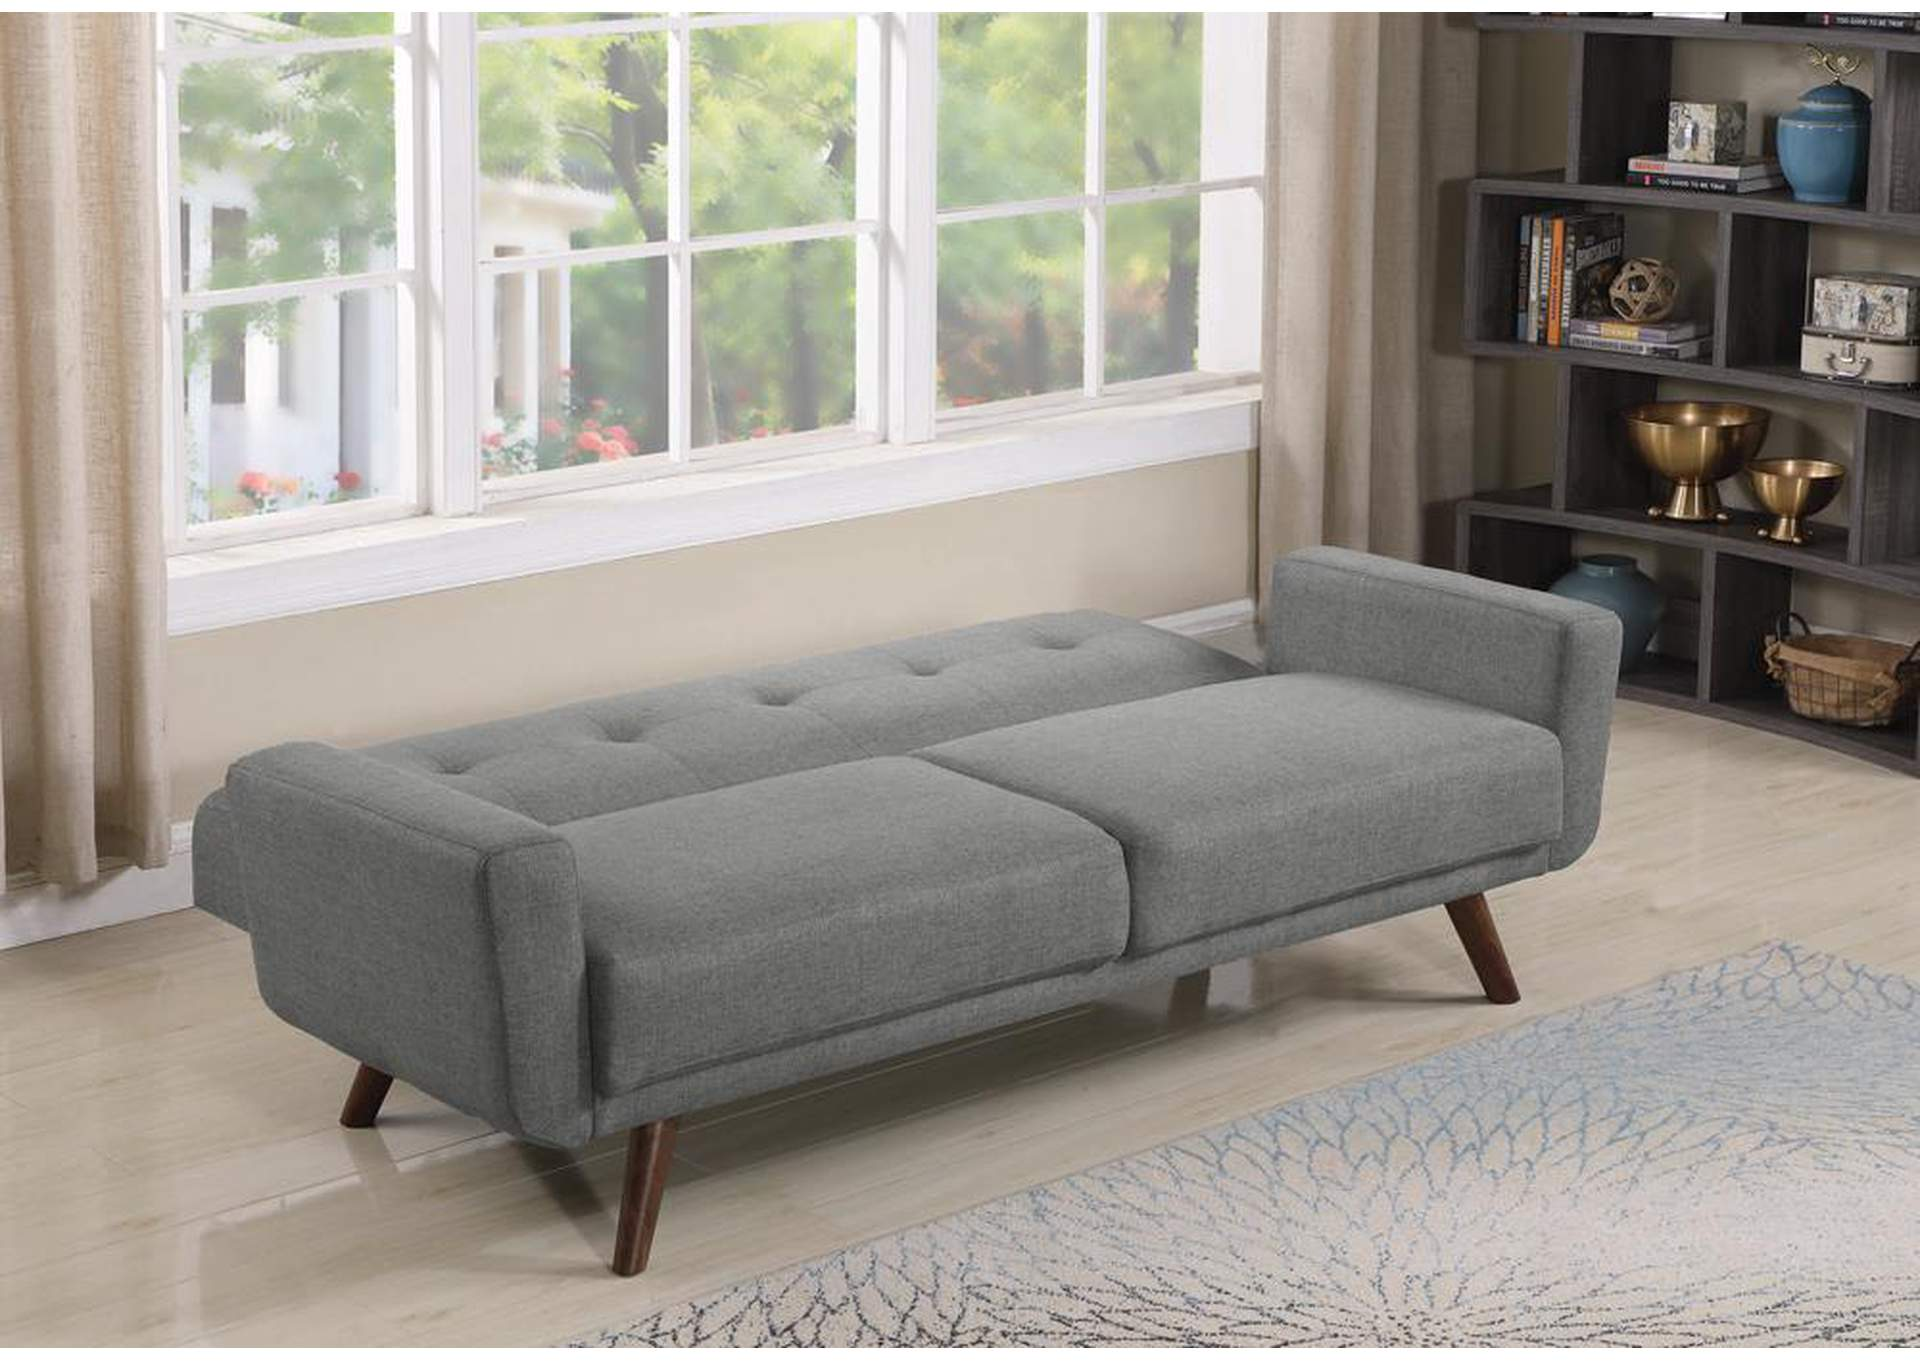 Gray Mid-Century Modern Grey and Walnut Sofa Bed,Coaster Furniture